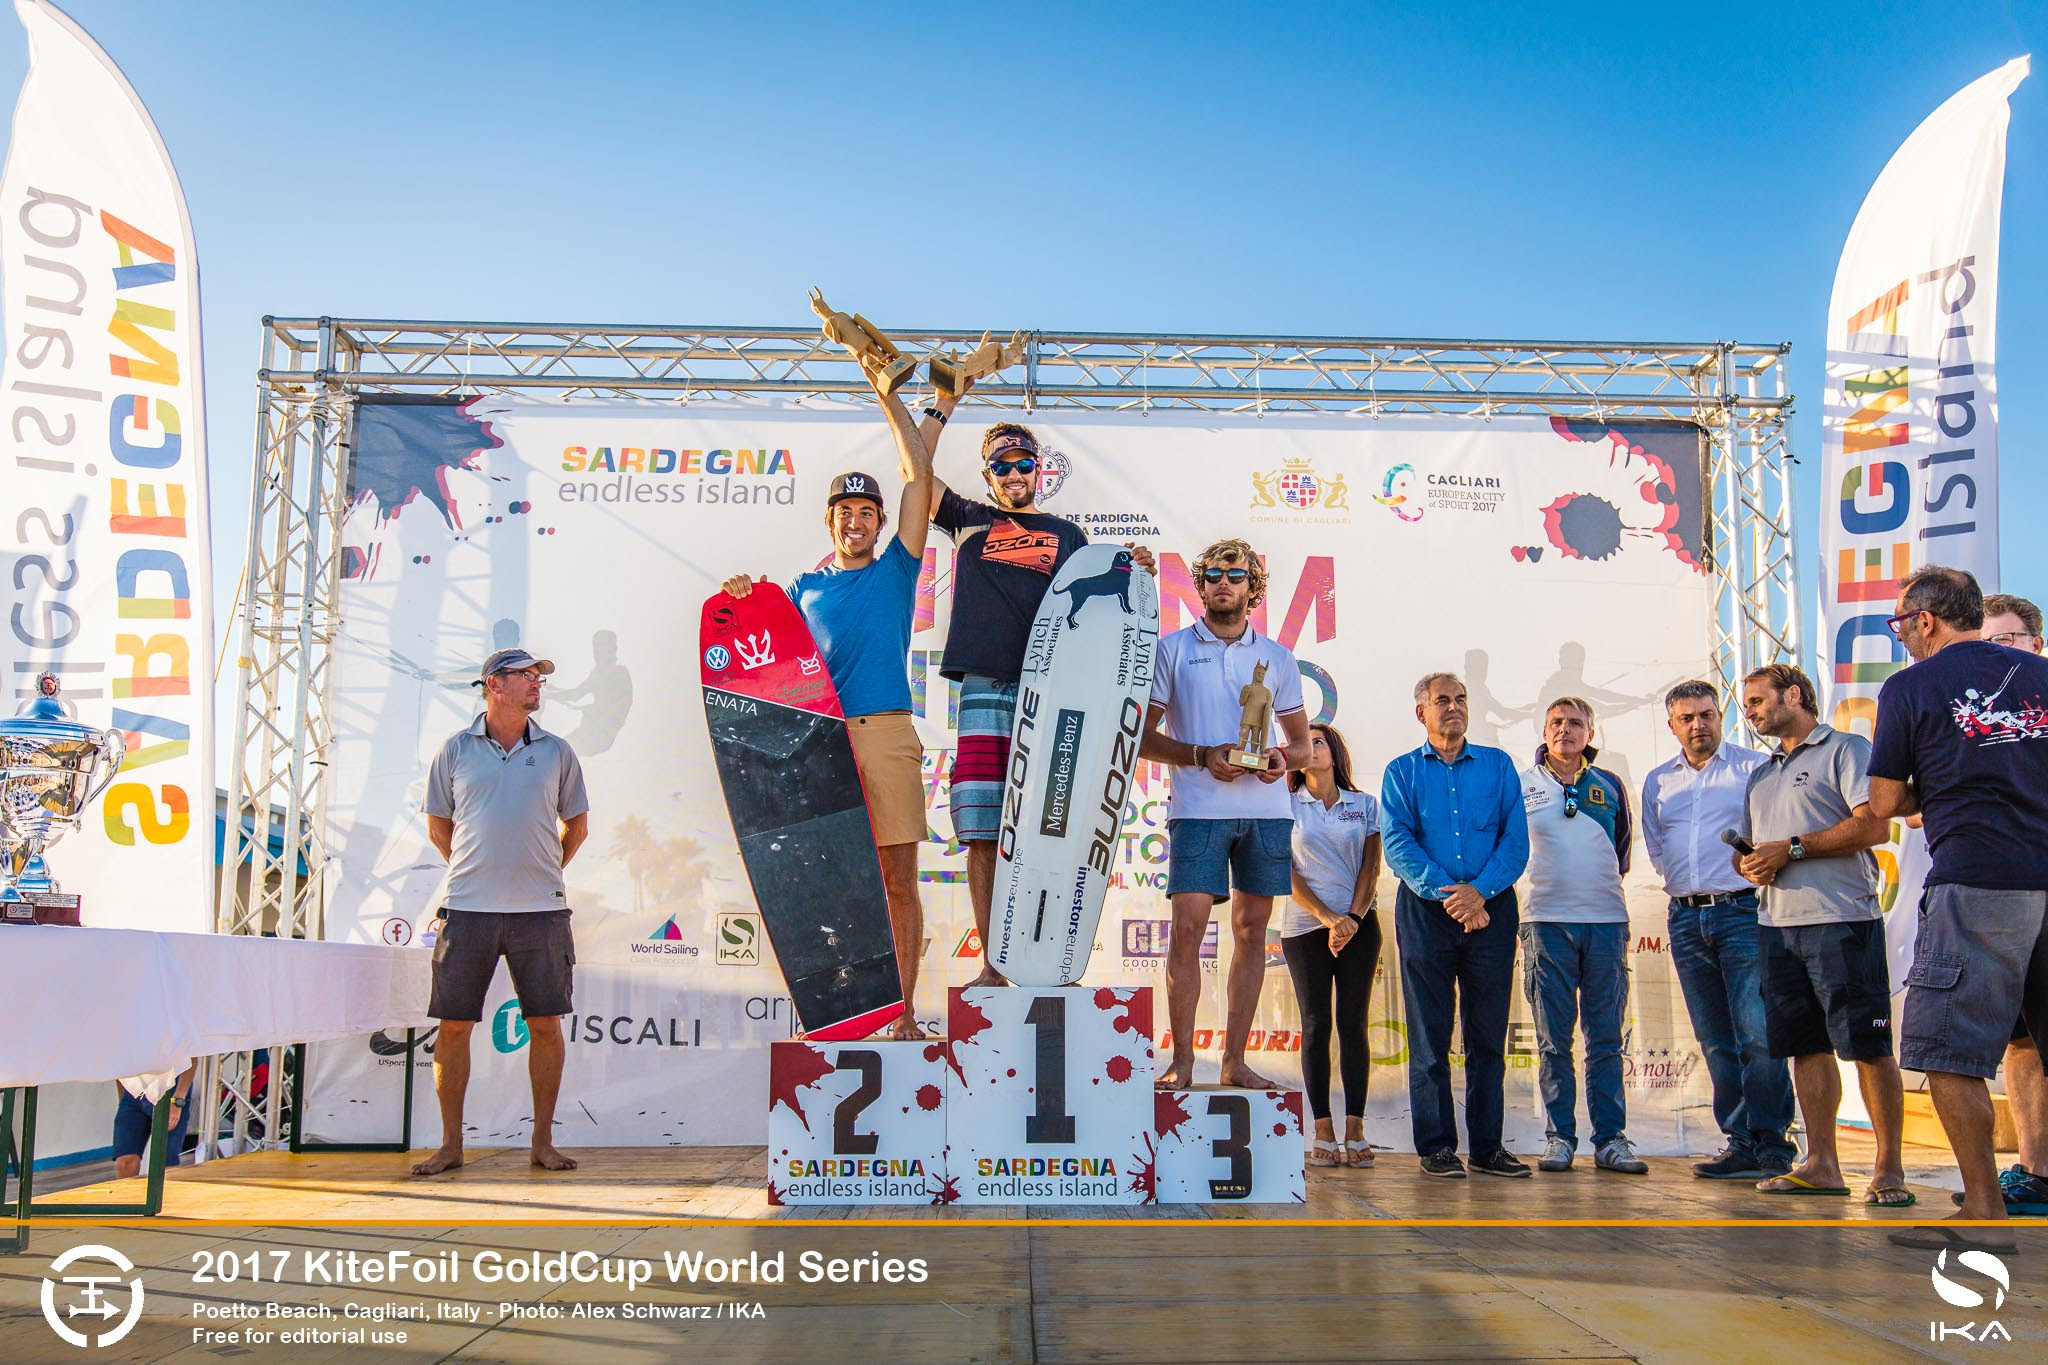 8e62d957 6504 48e5 a5d0 92b0ec501d2c - Final day of racing at KiteFoil World Championships